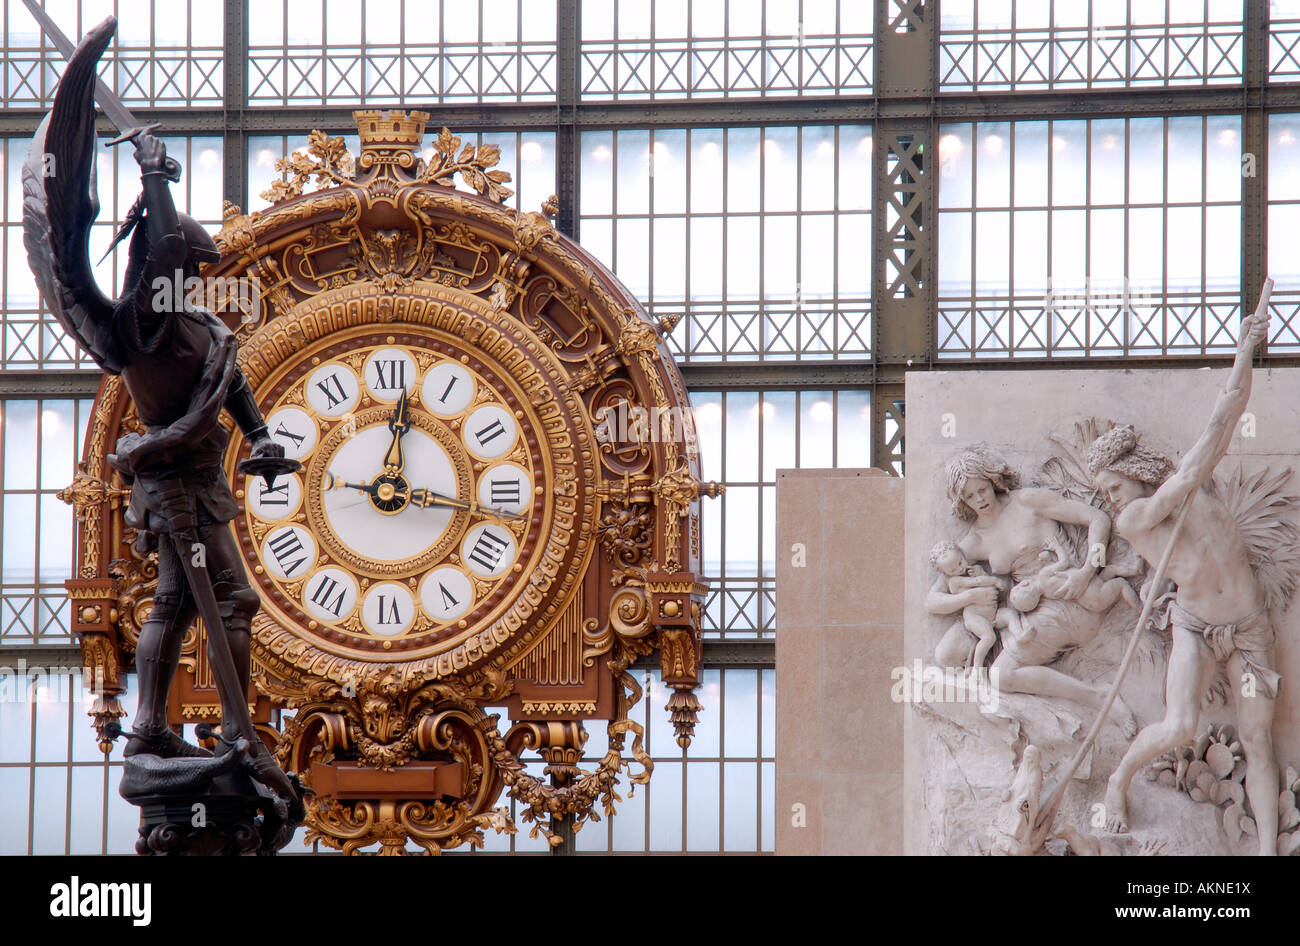 France, Paris, Orsay museum, interieur - Stock Image